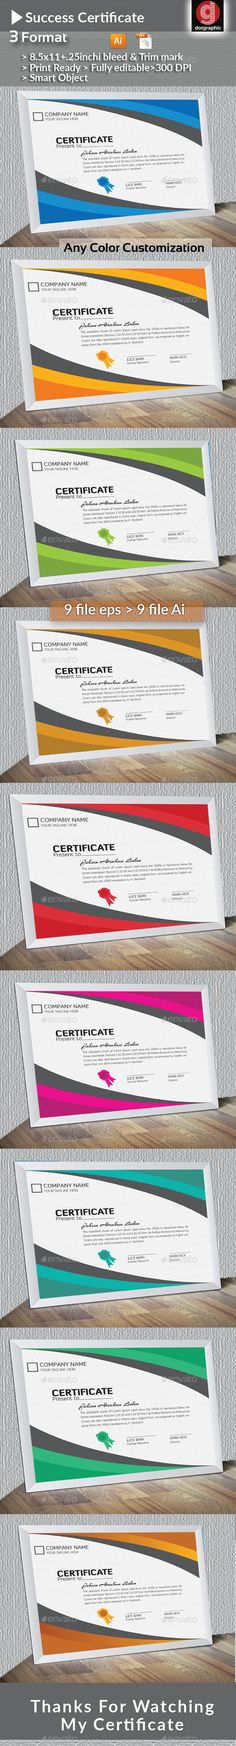 Circle Certificate Template Certificate templates, Infographic - Corporate Certificate Template